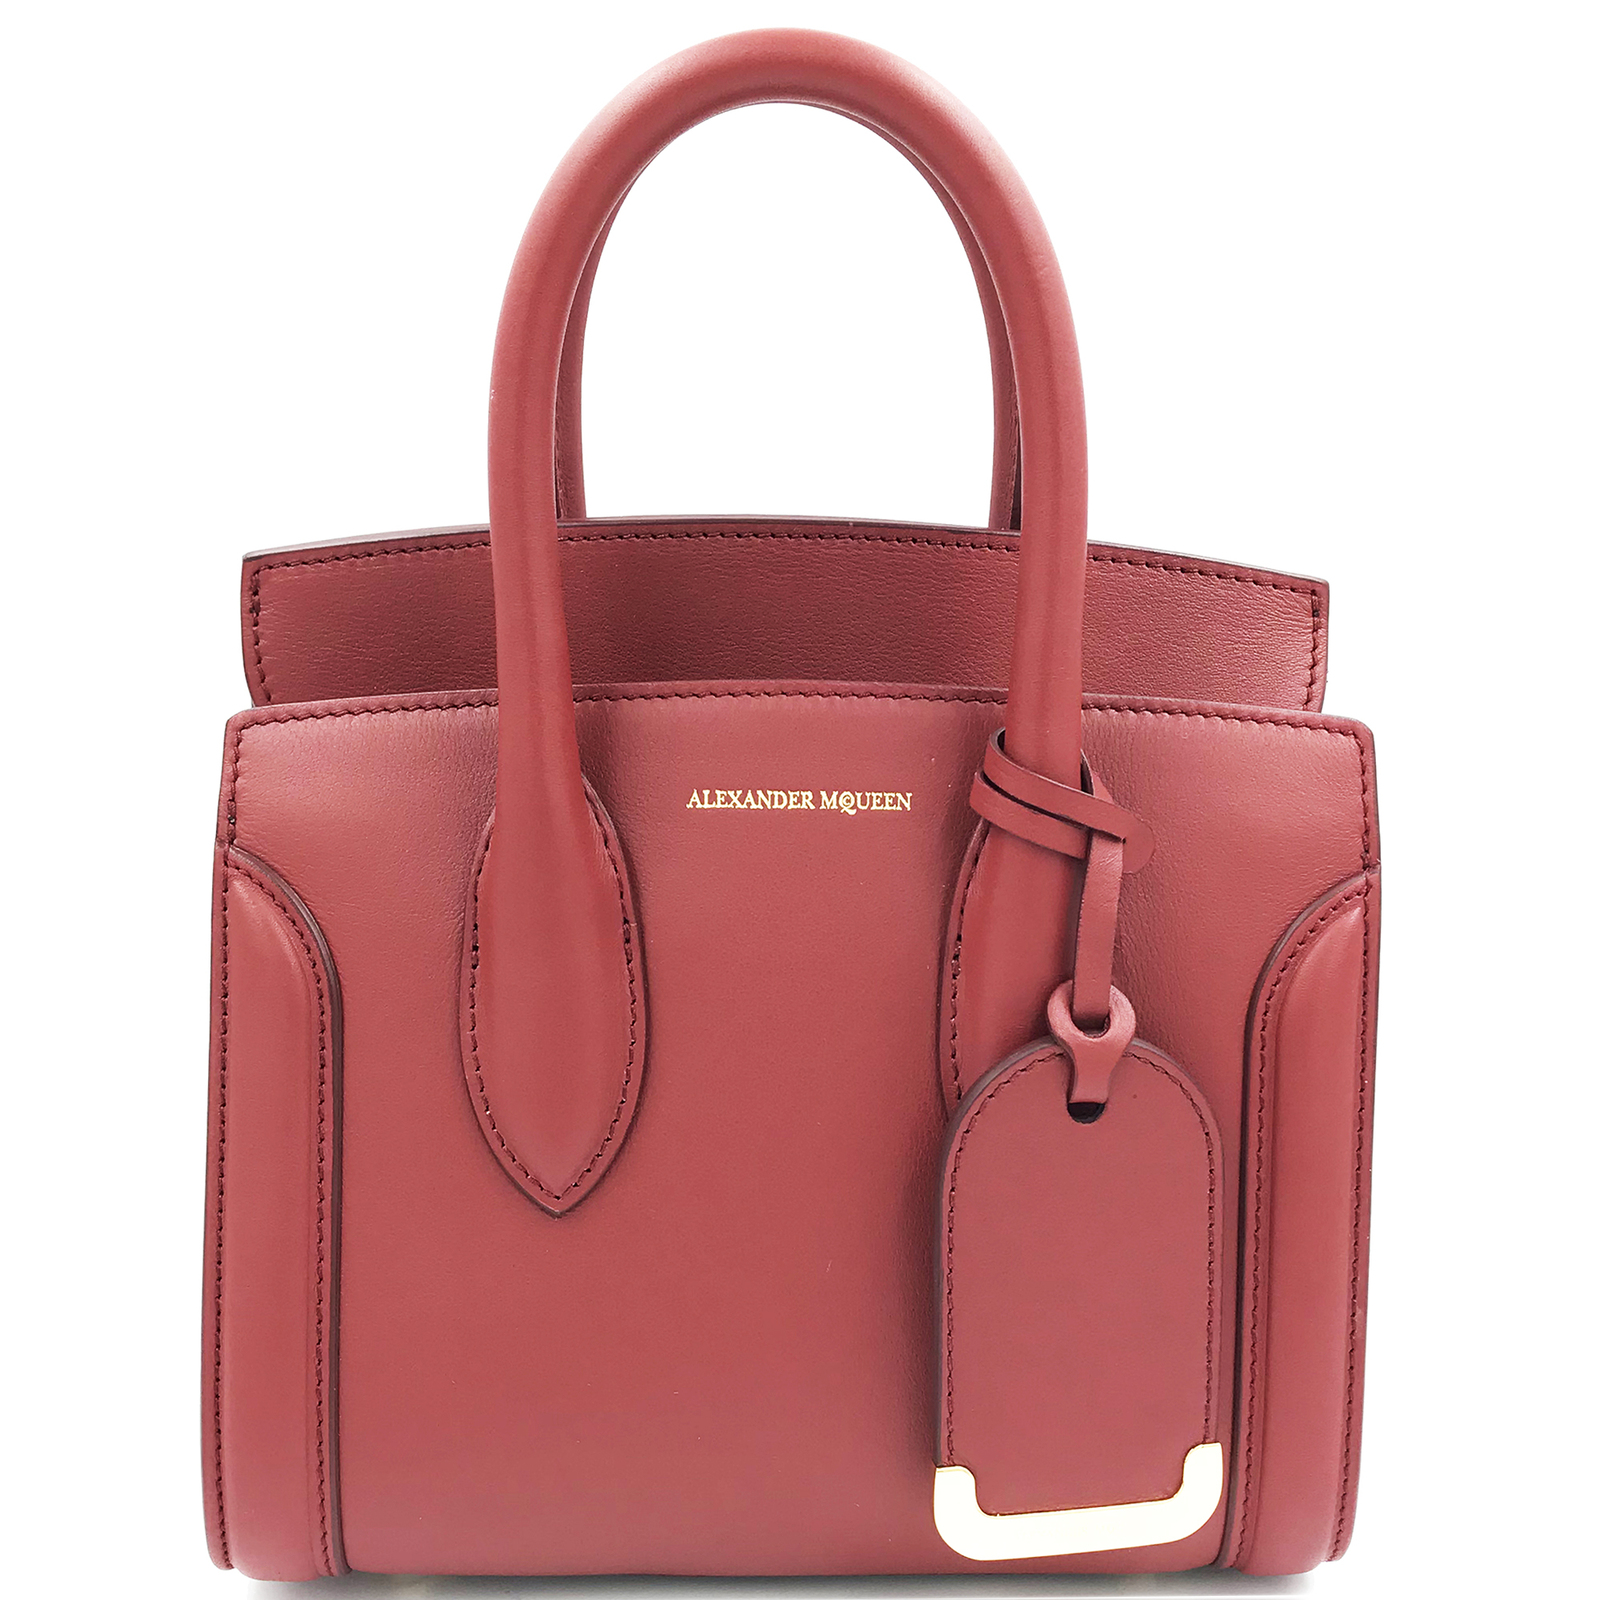 Primary image for Alexander McQueen Heroine 21 Dark Red  Italian Satchel Ladies Bag 47987DX50M